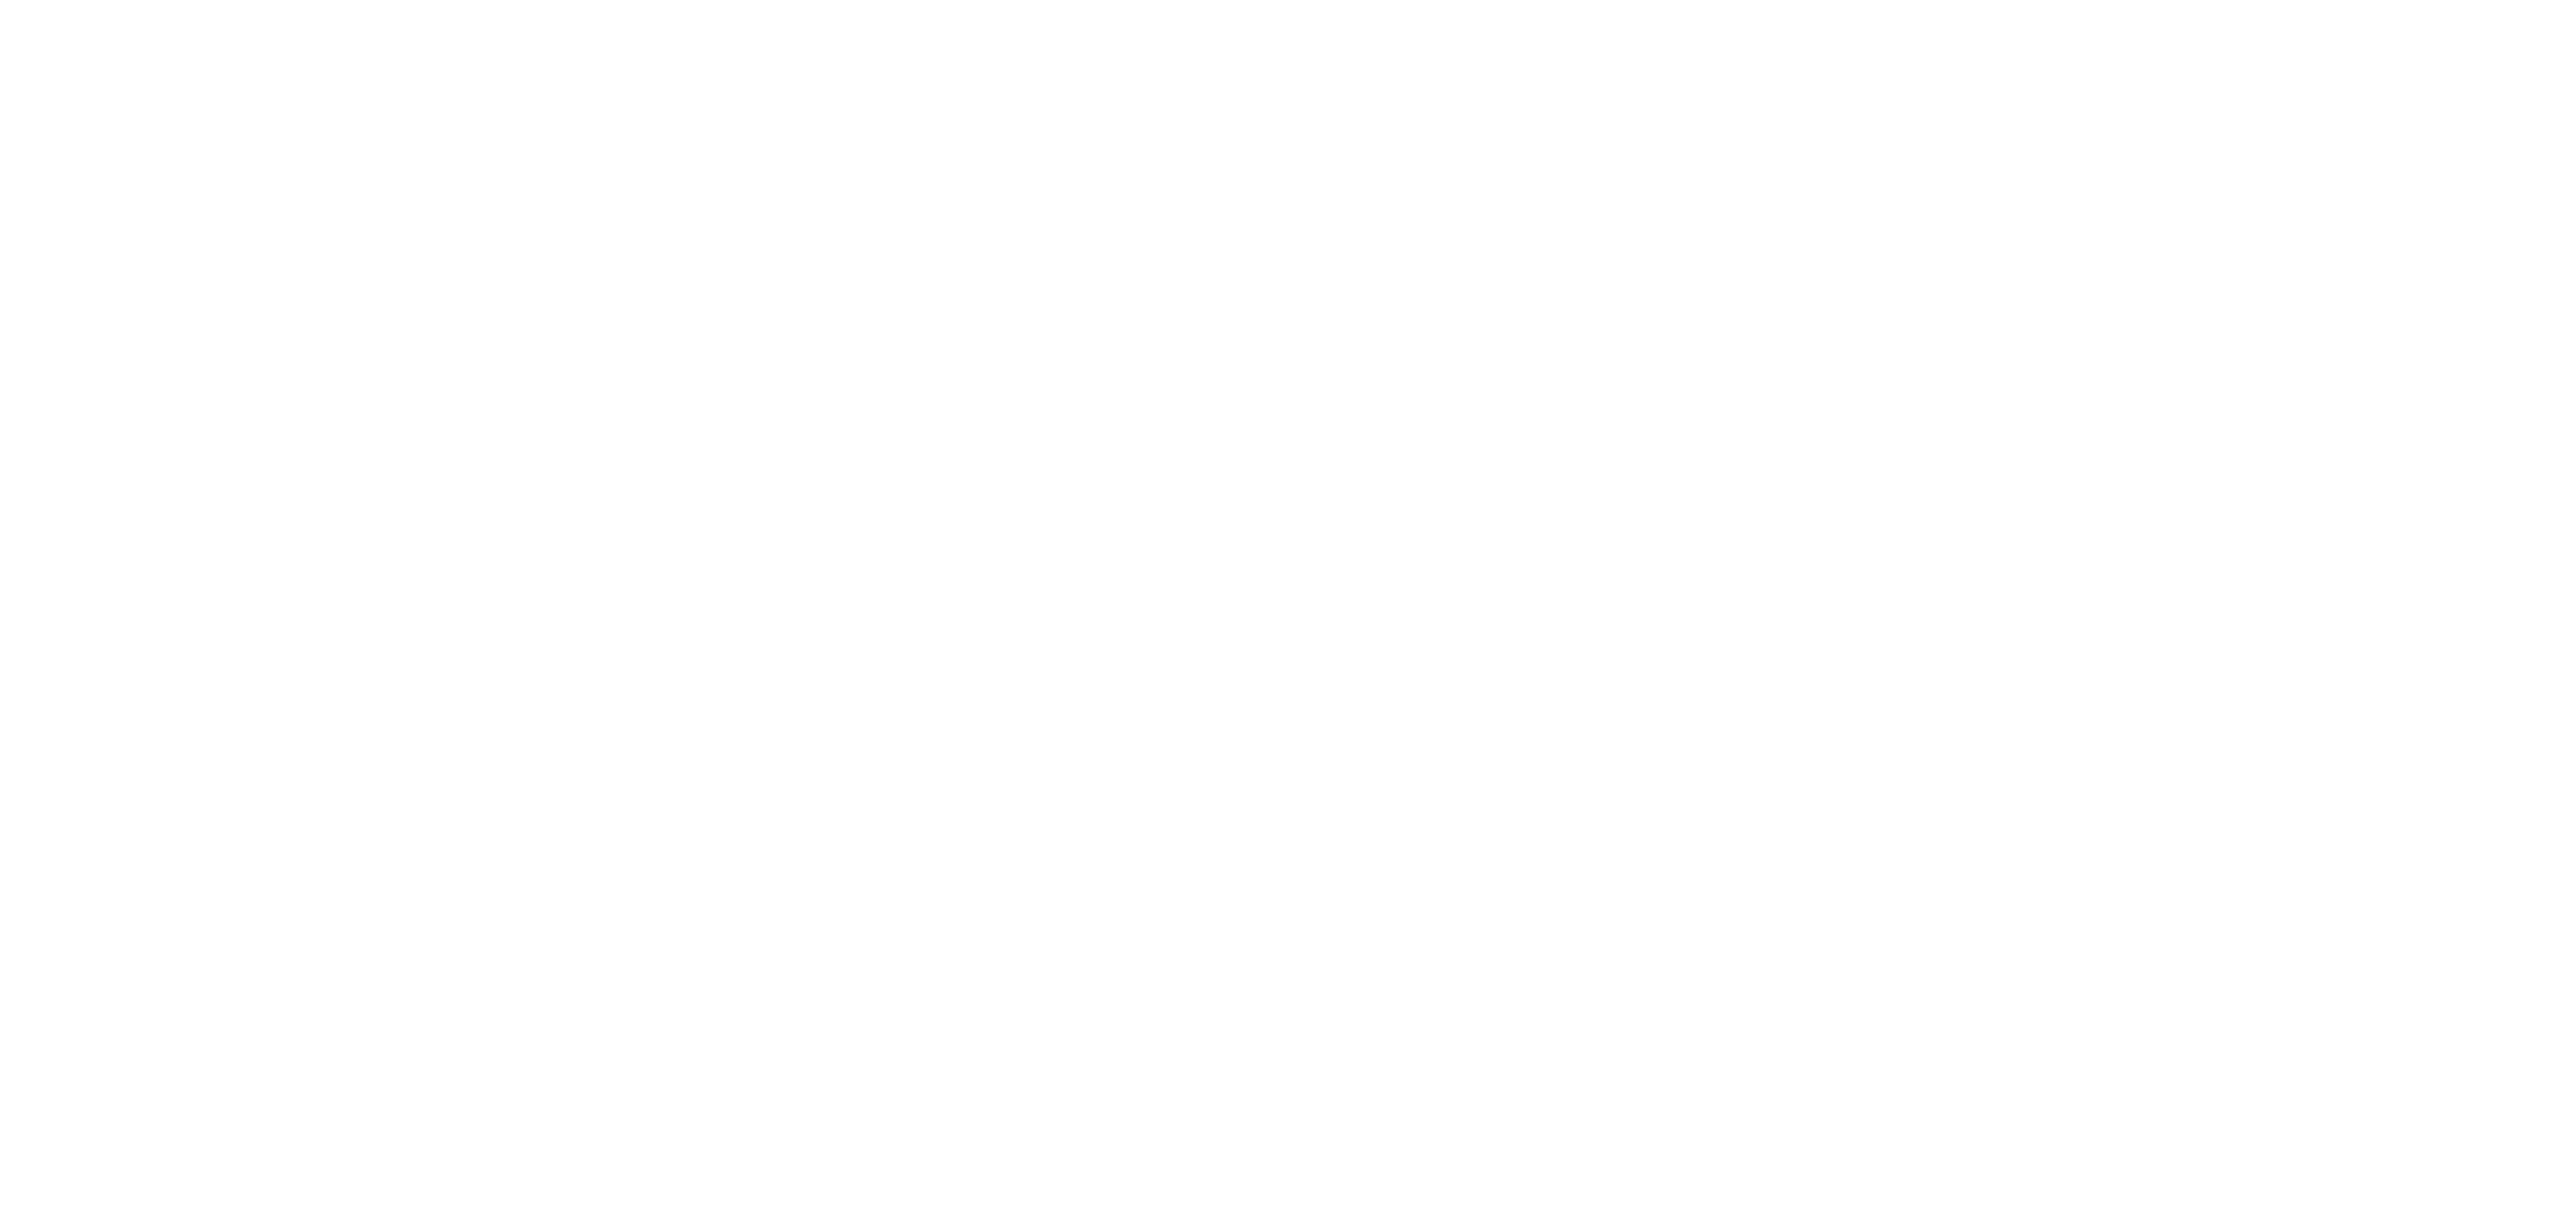 3DL_Retriever_Logo_Full_Reverse